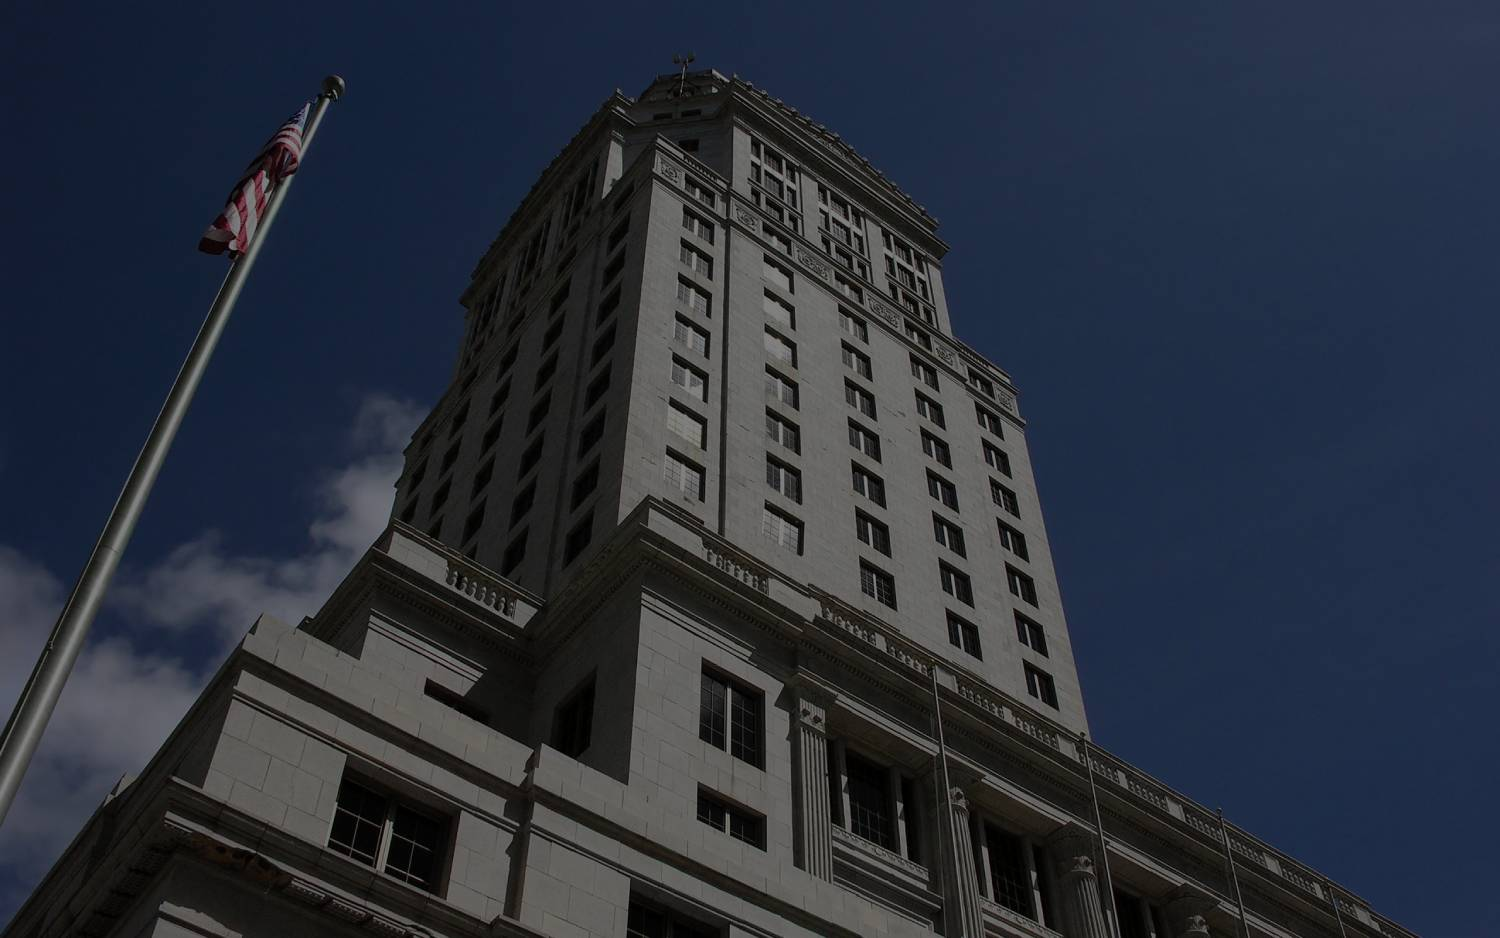 Darkened Image of Miami Dade County Courthouse